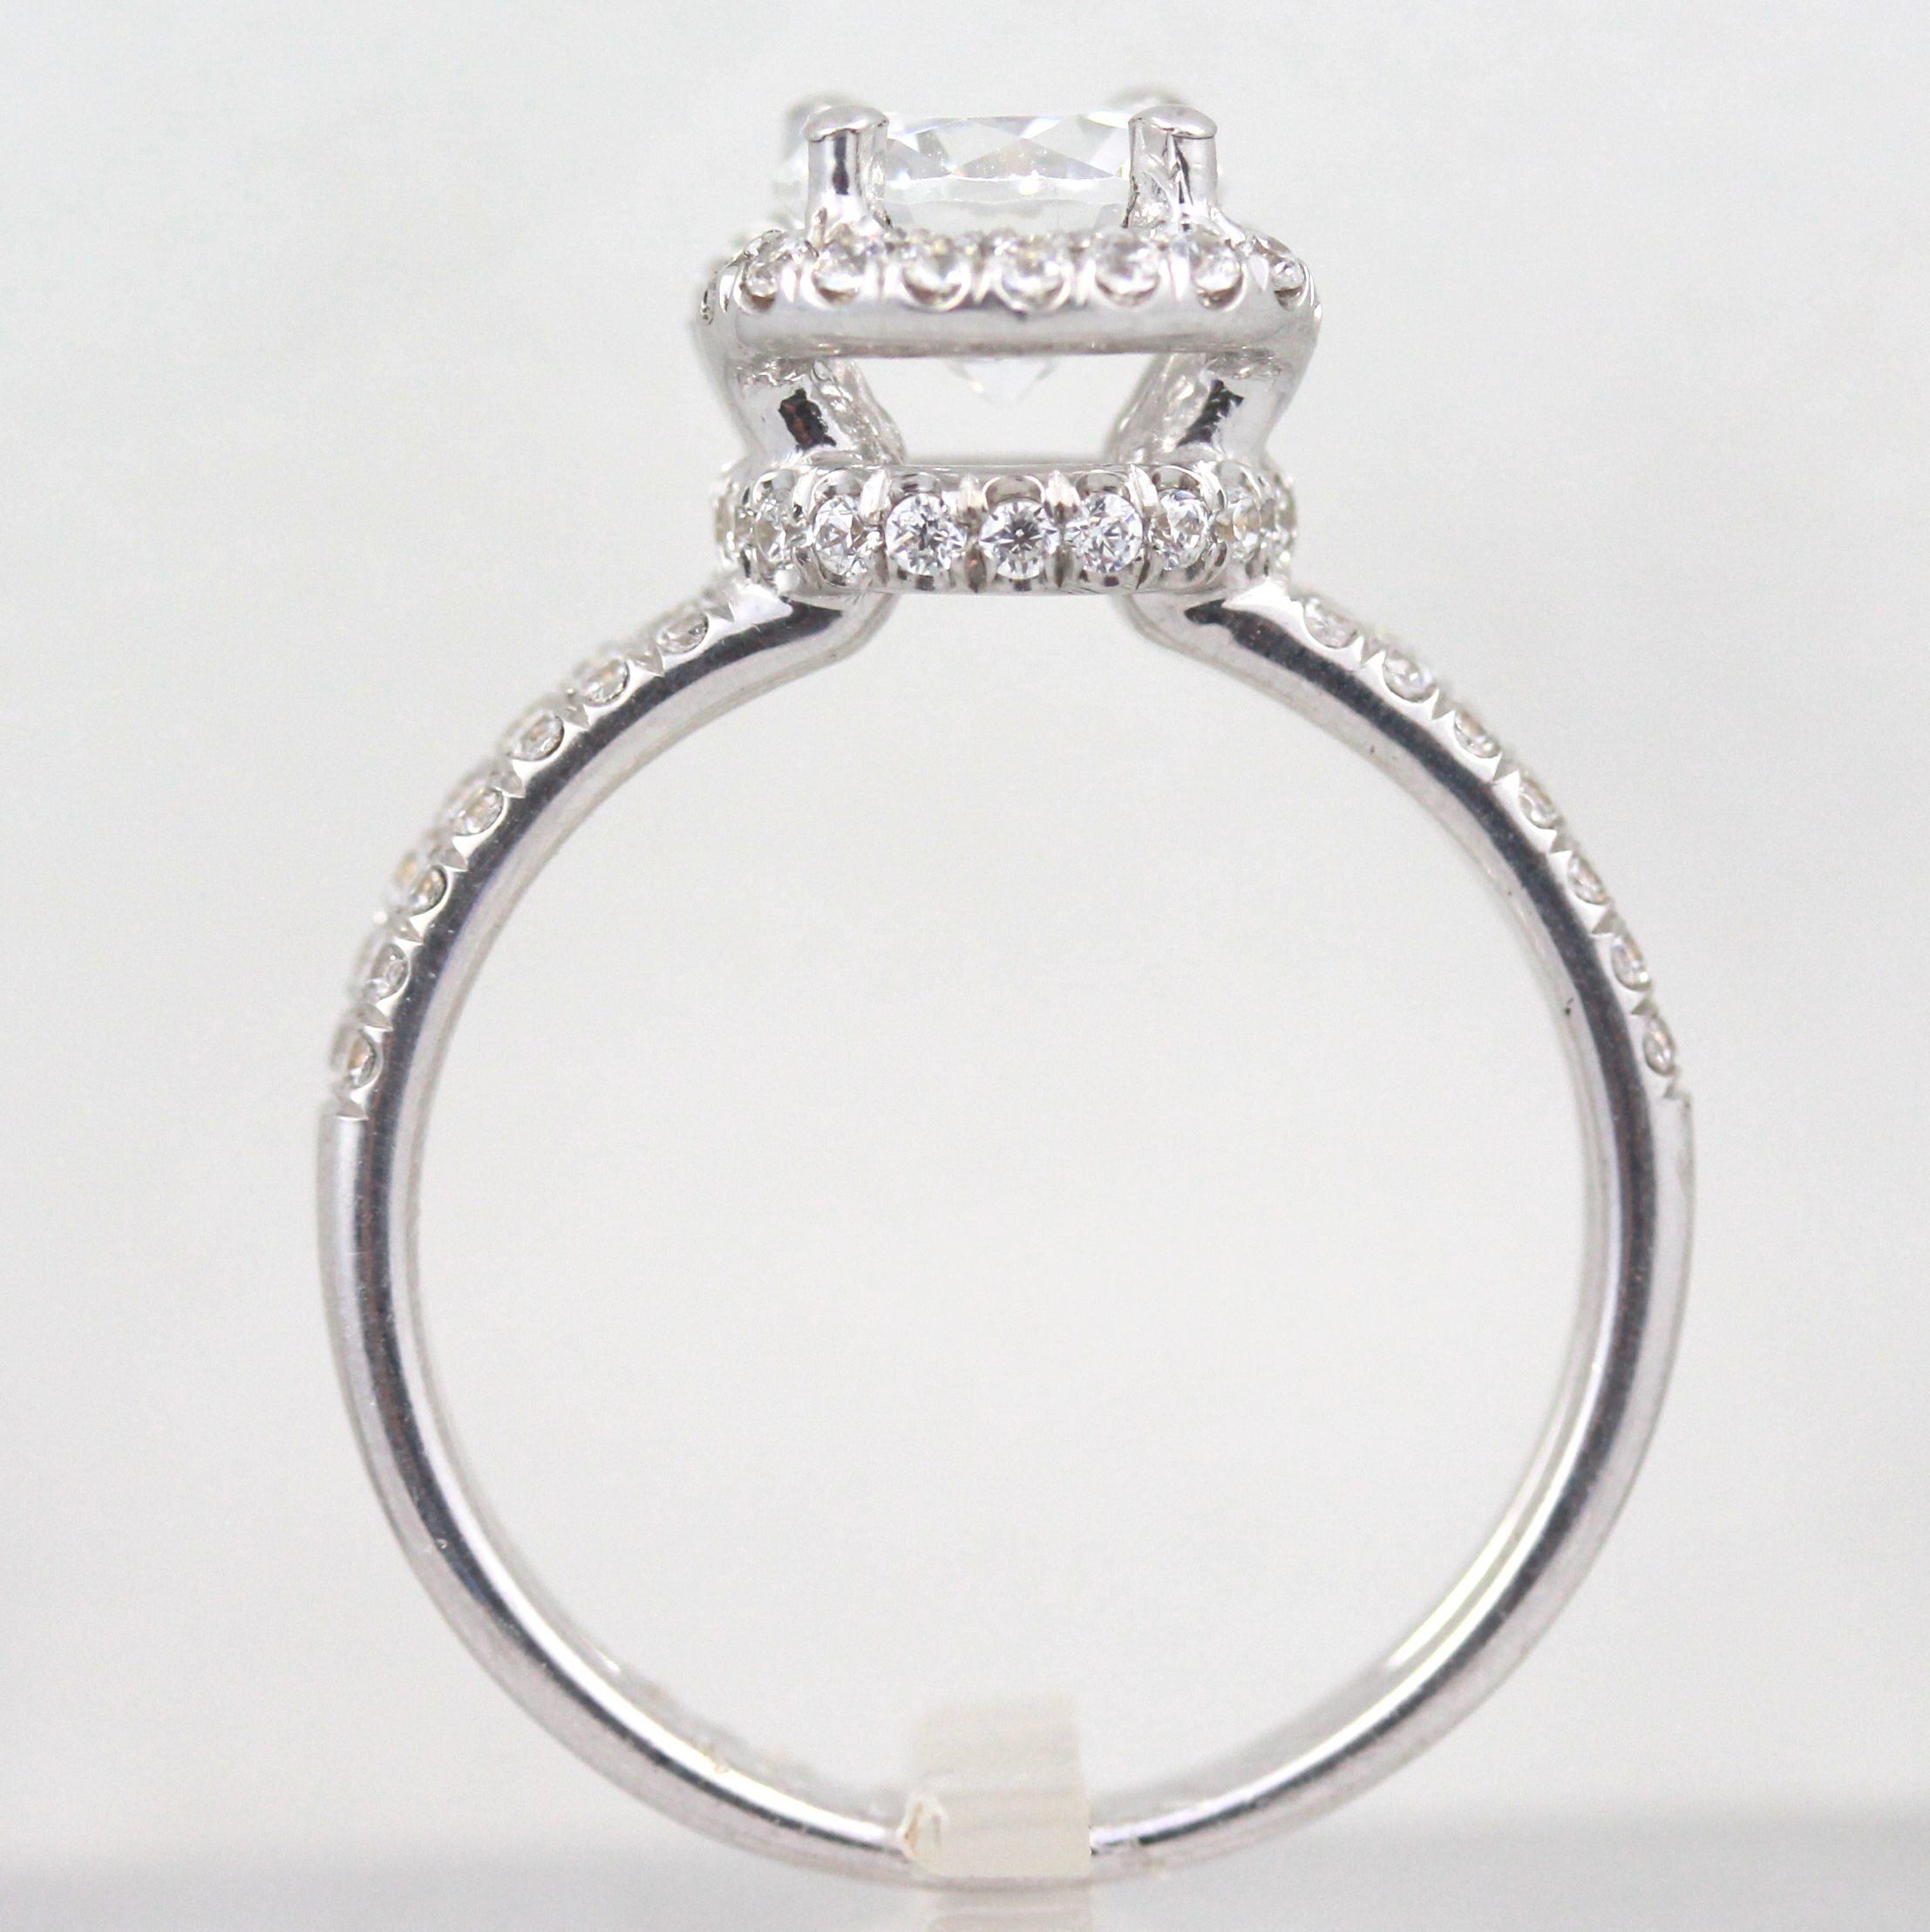 only s here post photos engagement threads prong ring of purseforum your wedding rings hfxshop